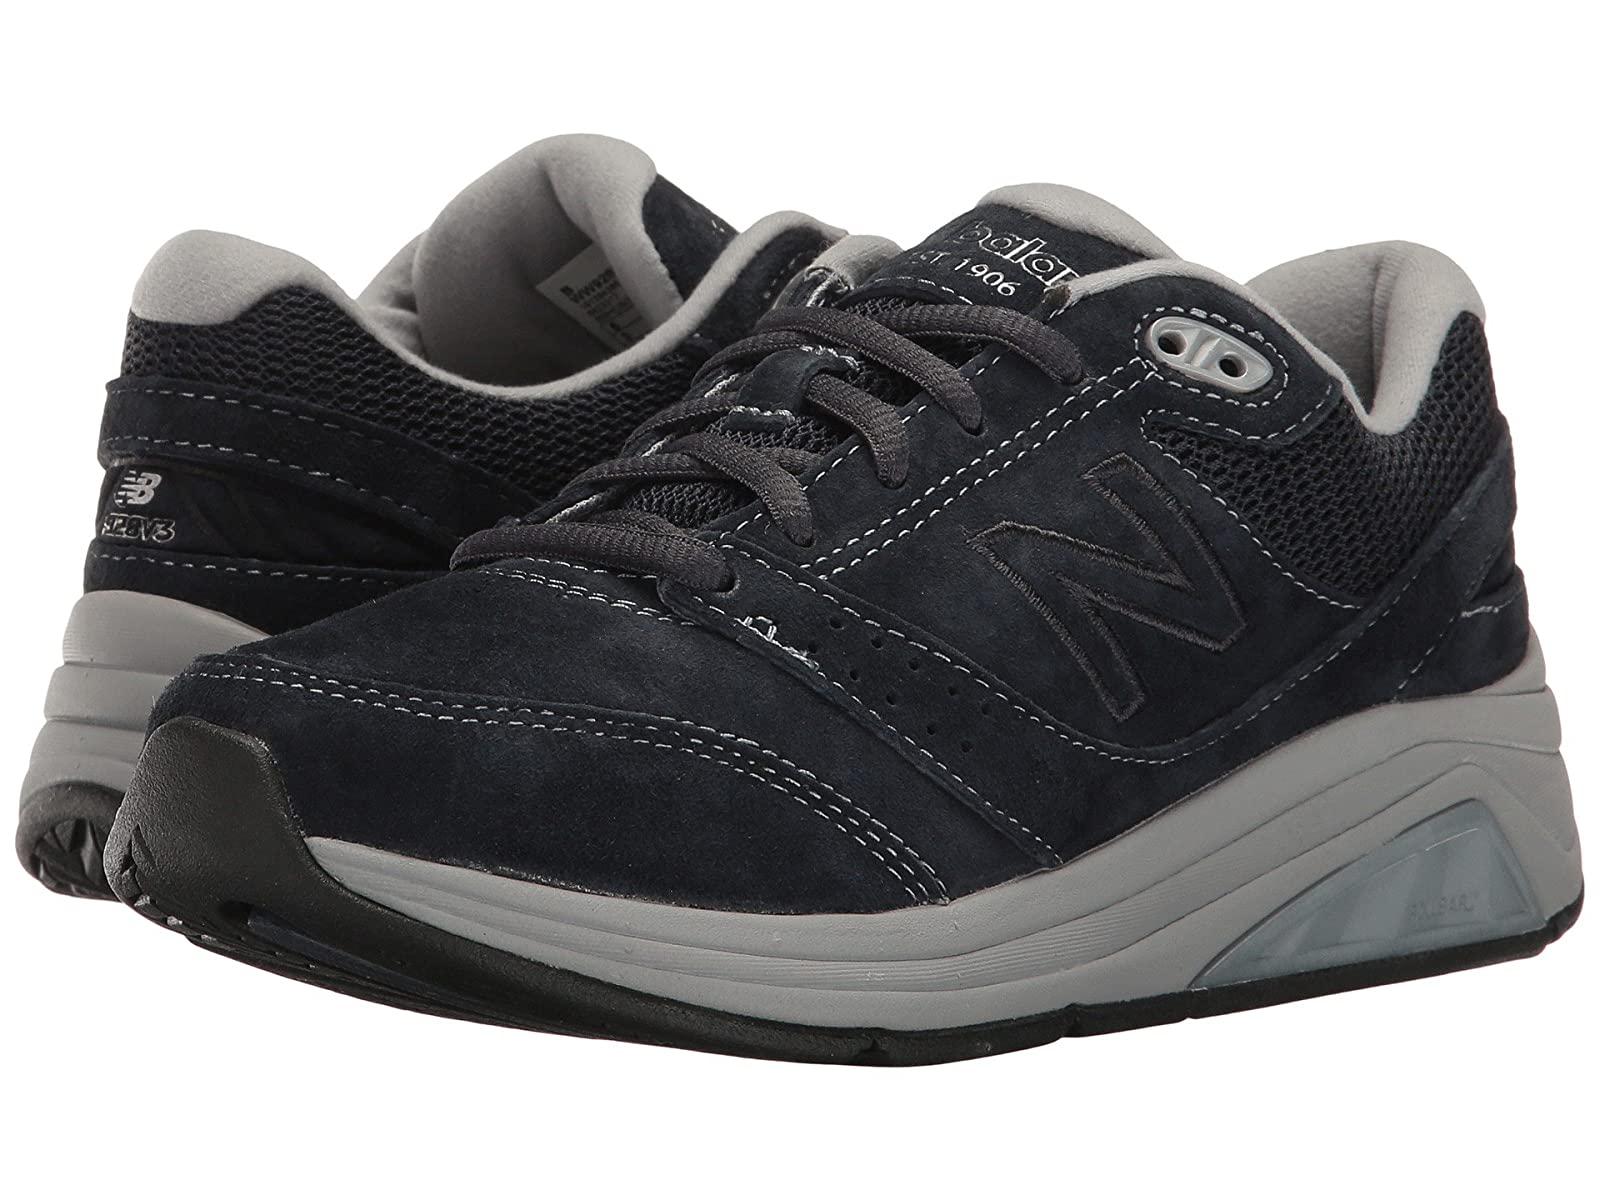 New Balance WW928v3Atmospheric grades have affordable shoes